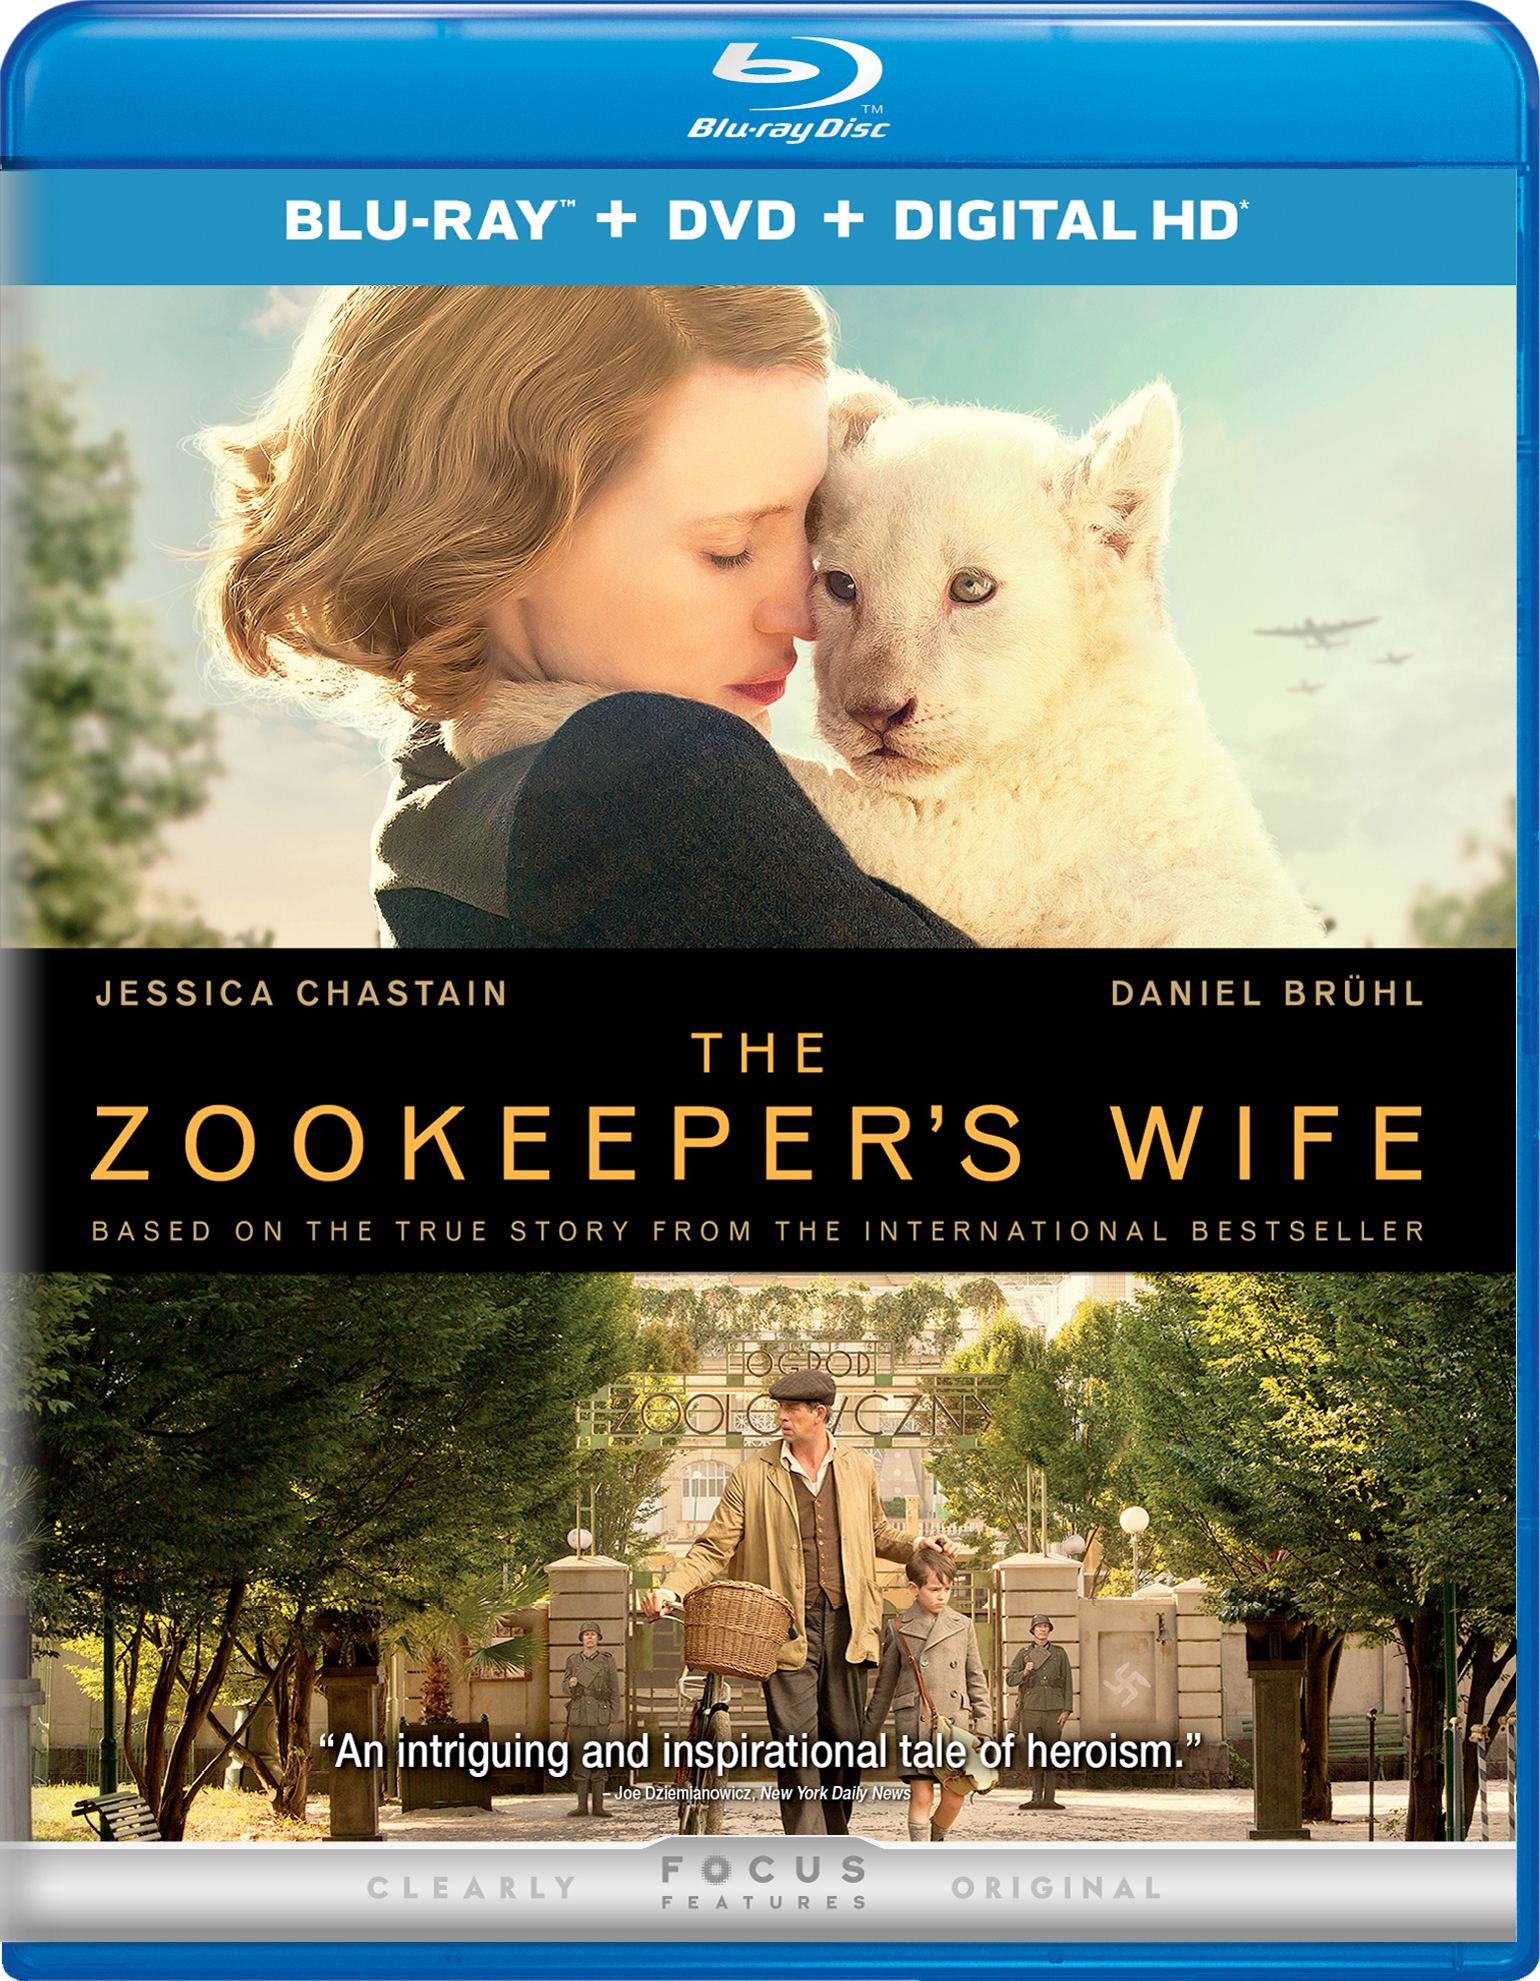 The Zookeepers Wife (2017) poster image